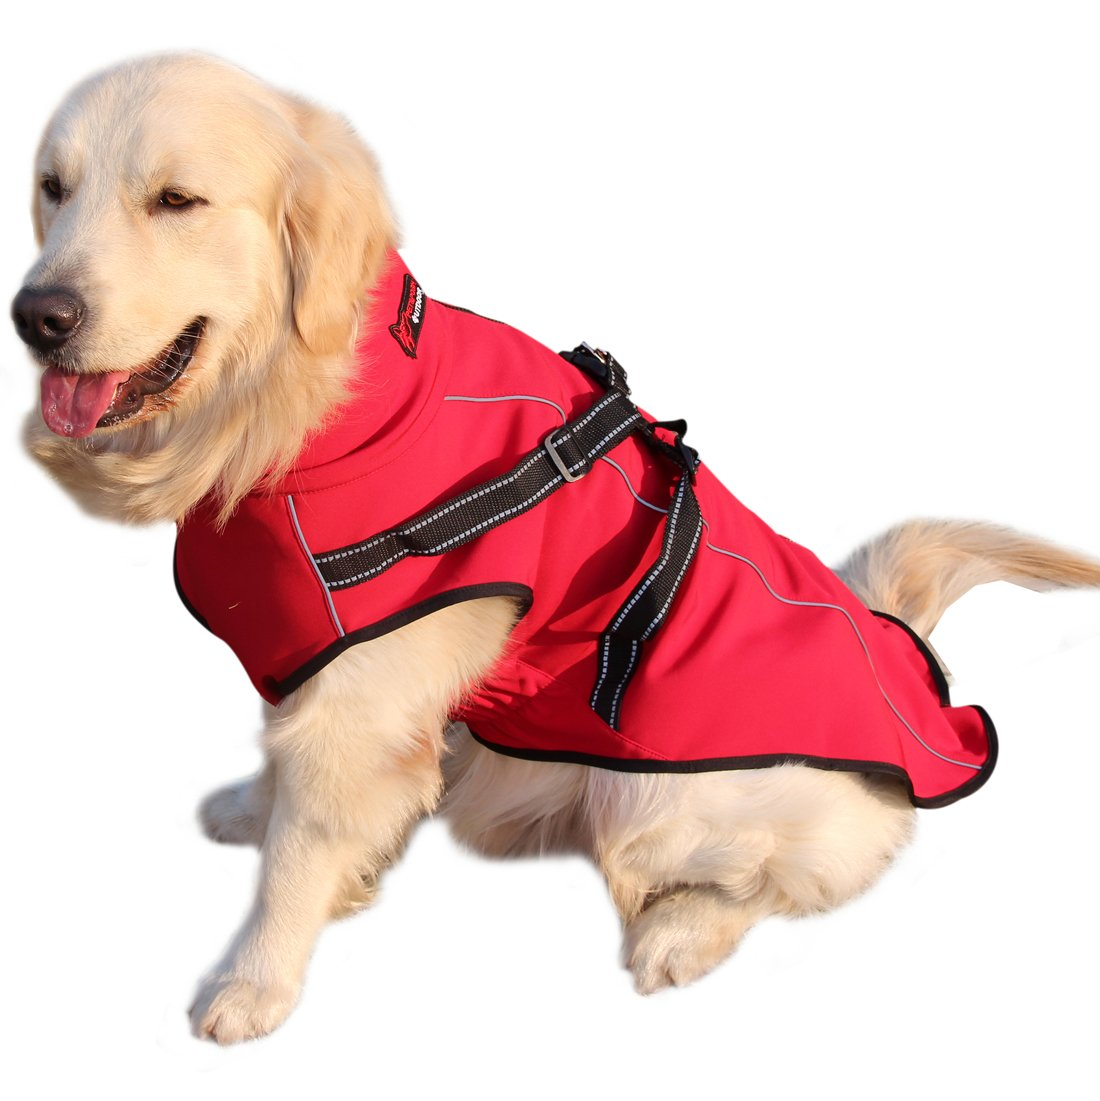 Red X-Large Red X-Large vecomfy Premium Stretchy Polyester & Warm Fleece Lined Dog Jacket for Winter,Outdoor Waterproof Dog Coats with Integrated Back Traction Belt for Large Dogs, Red XL